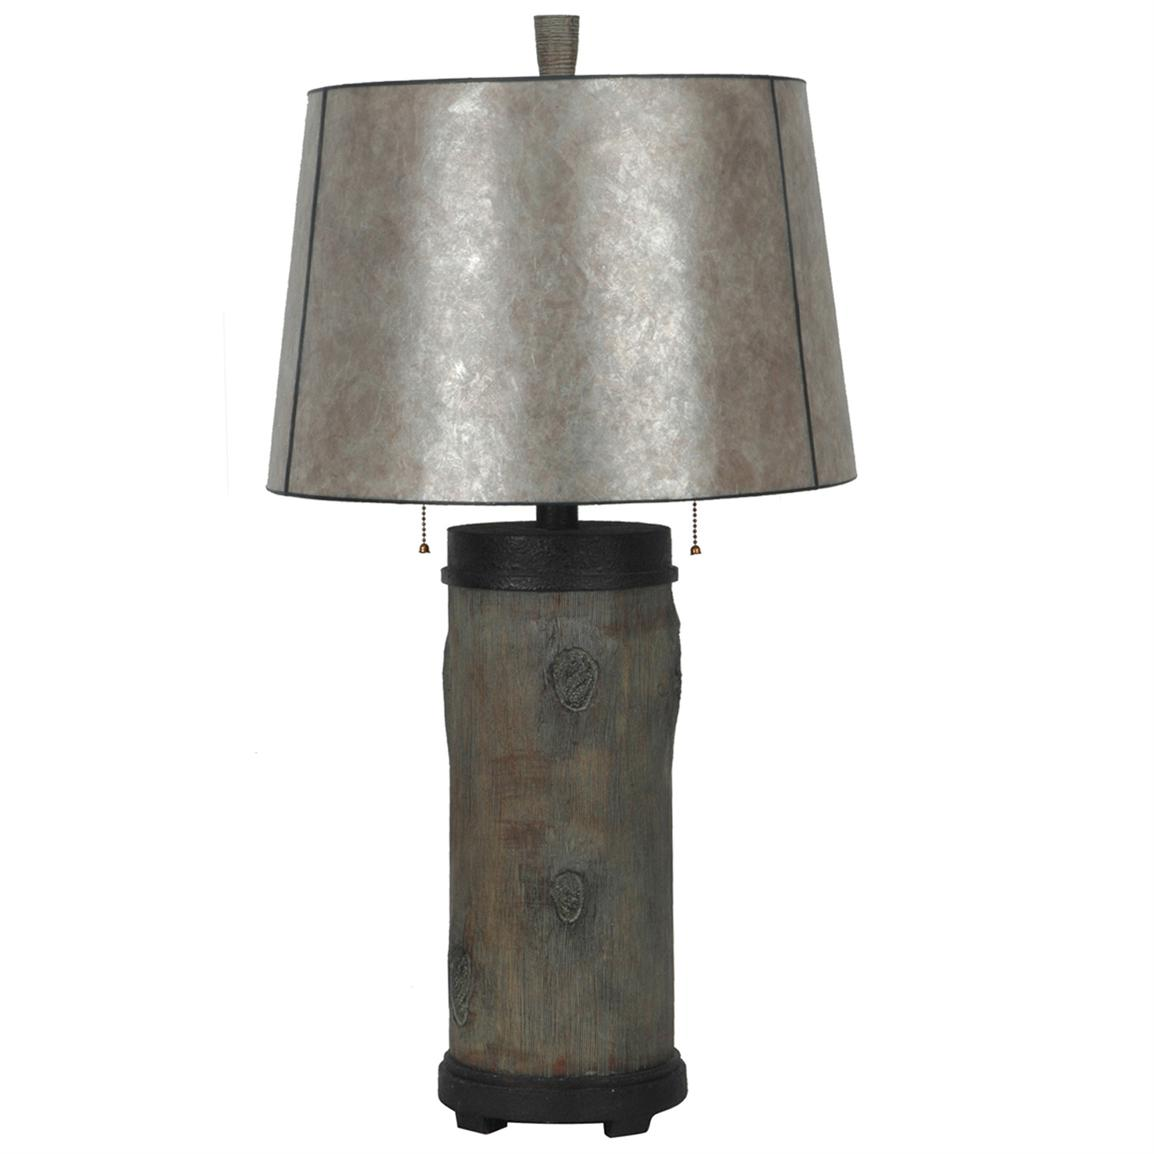 Rustic Log Table Lamp from Crestview Collection